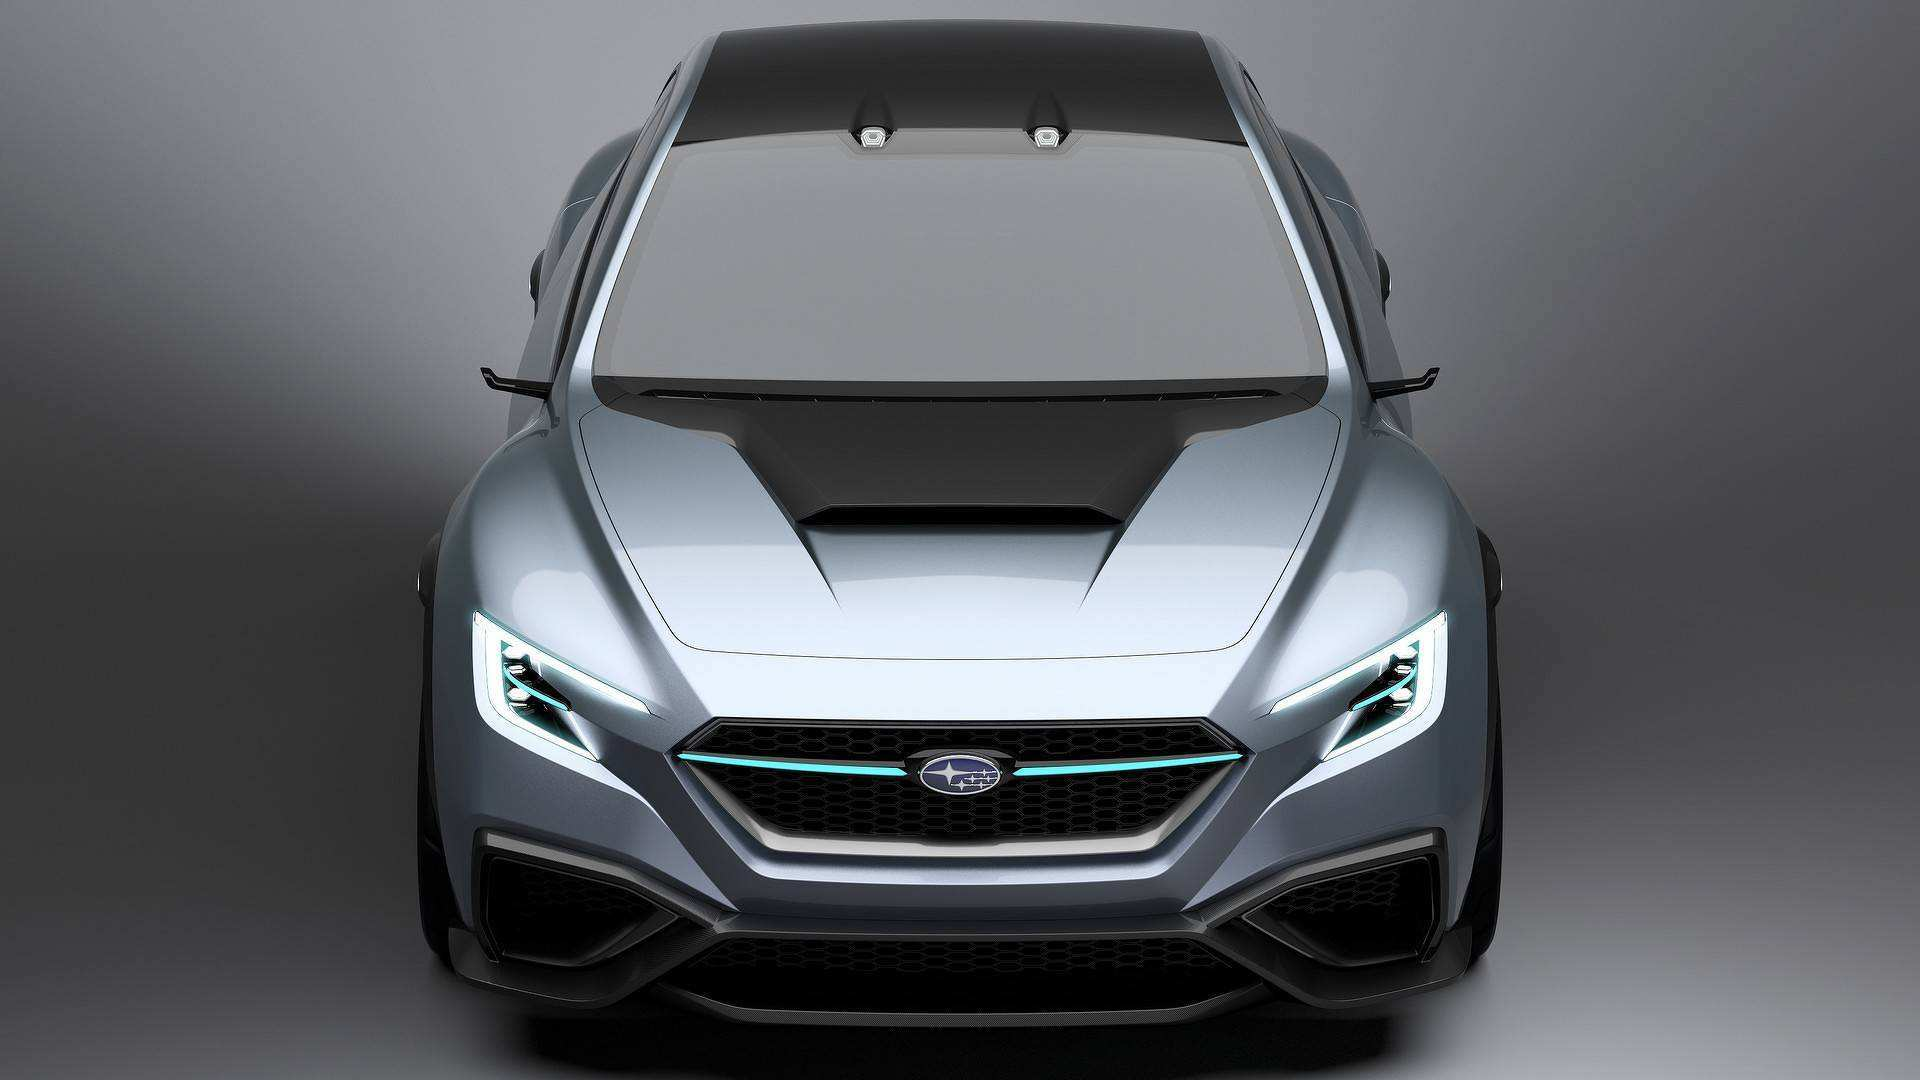 76 Gallery of Subaru Electric Car 2020 Performance for Subaru Electric Car 2020